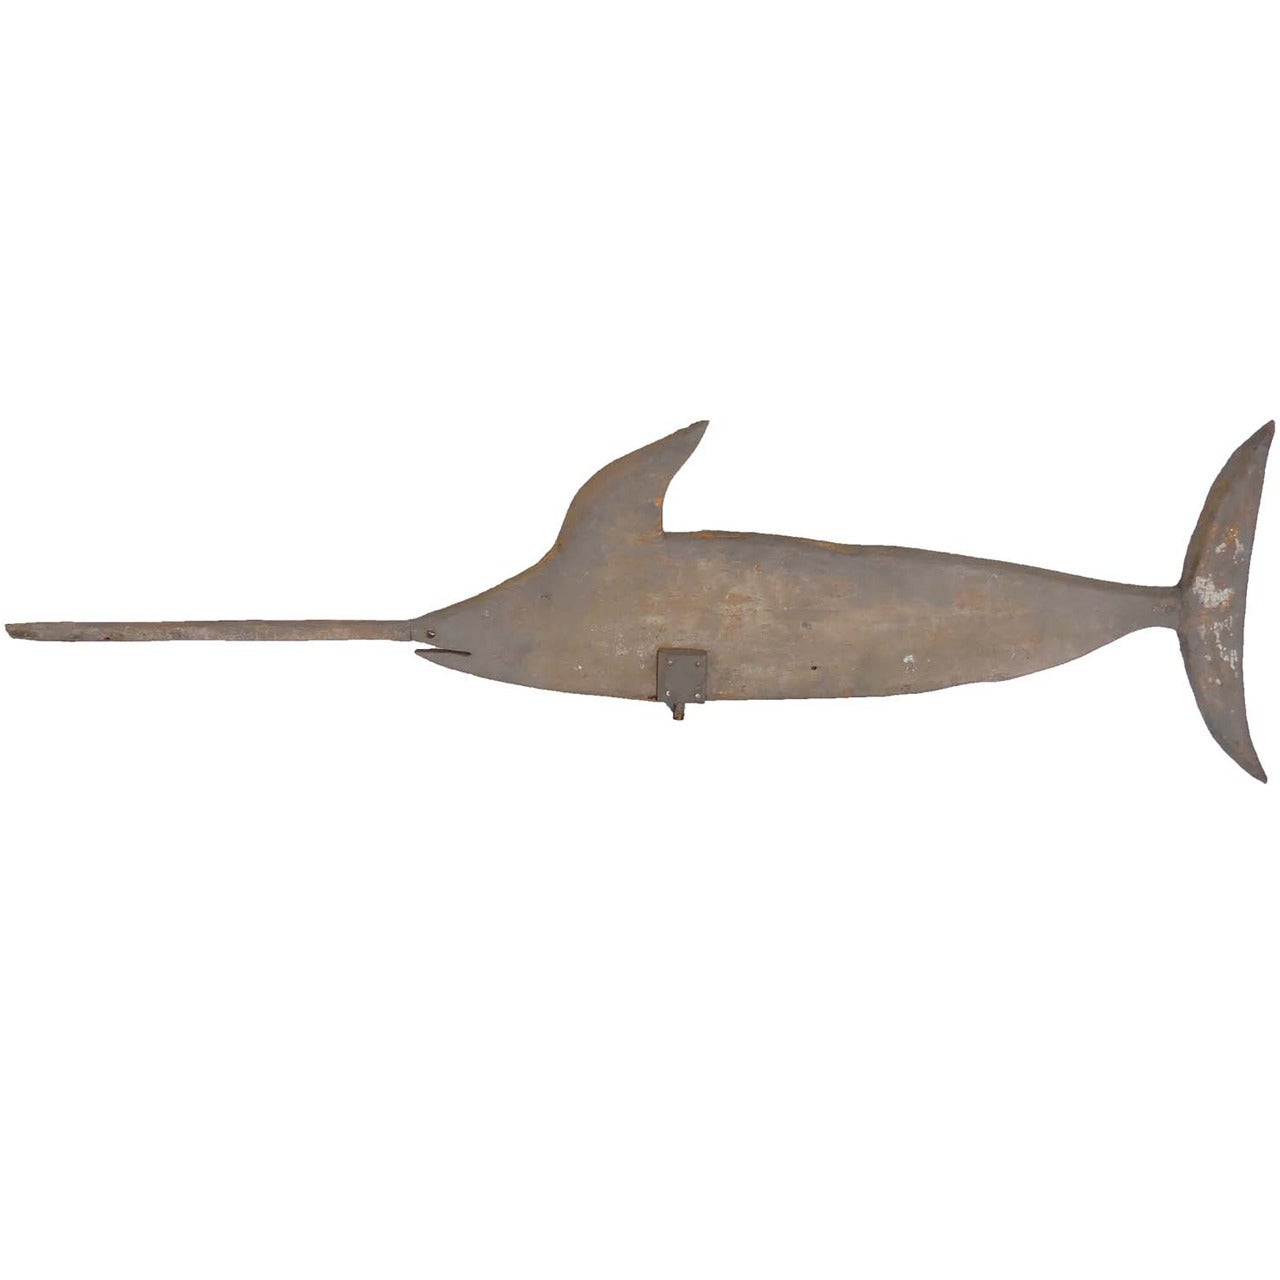 Swordfish Weathervane, 20th Century